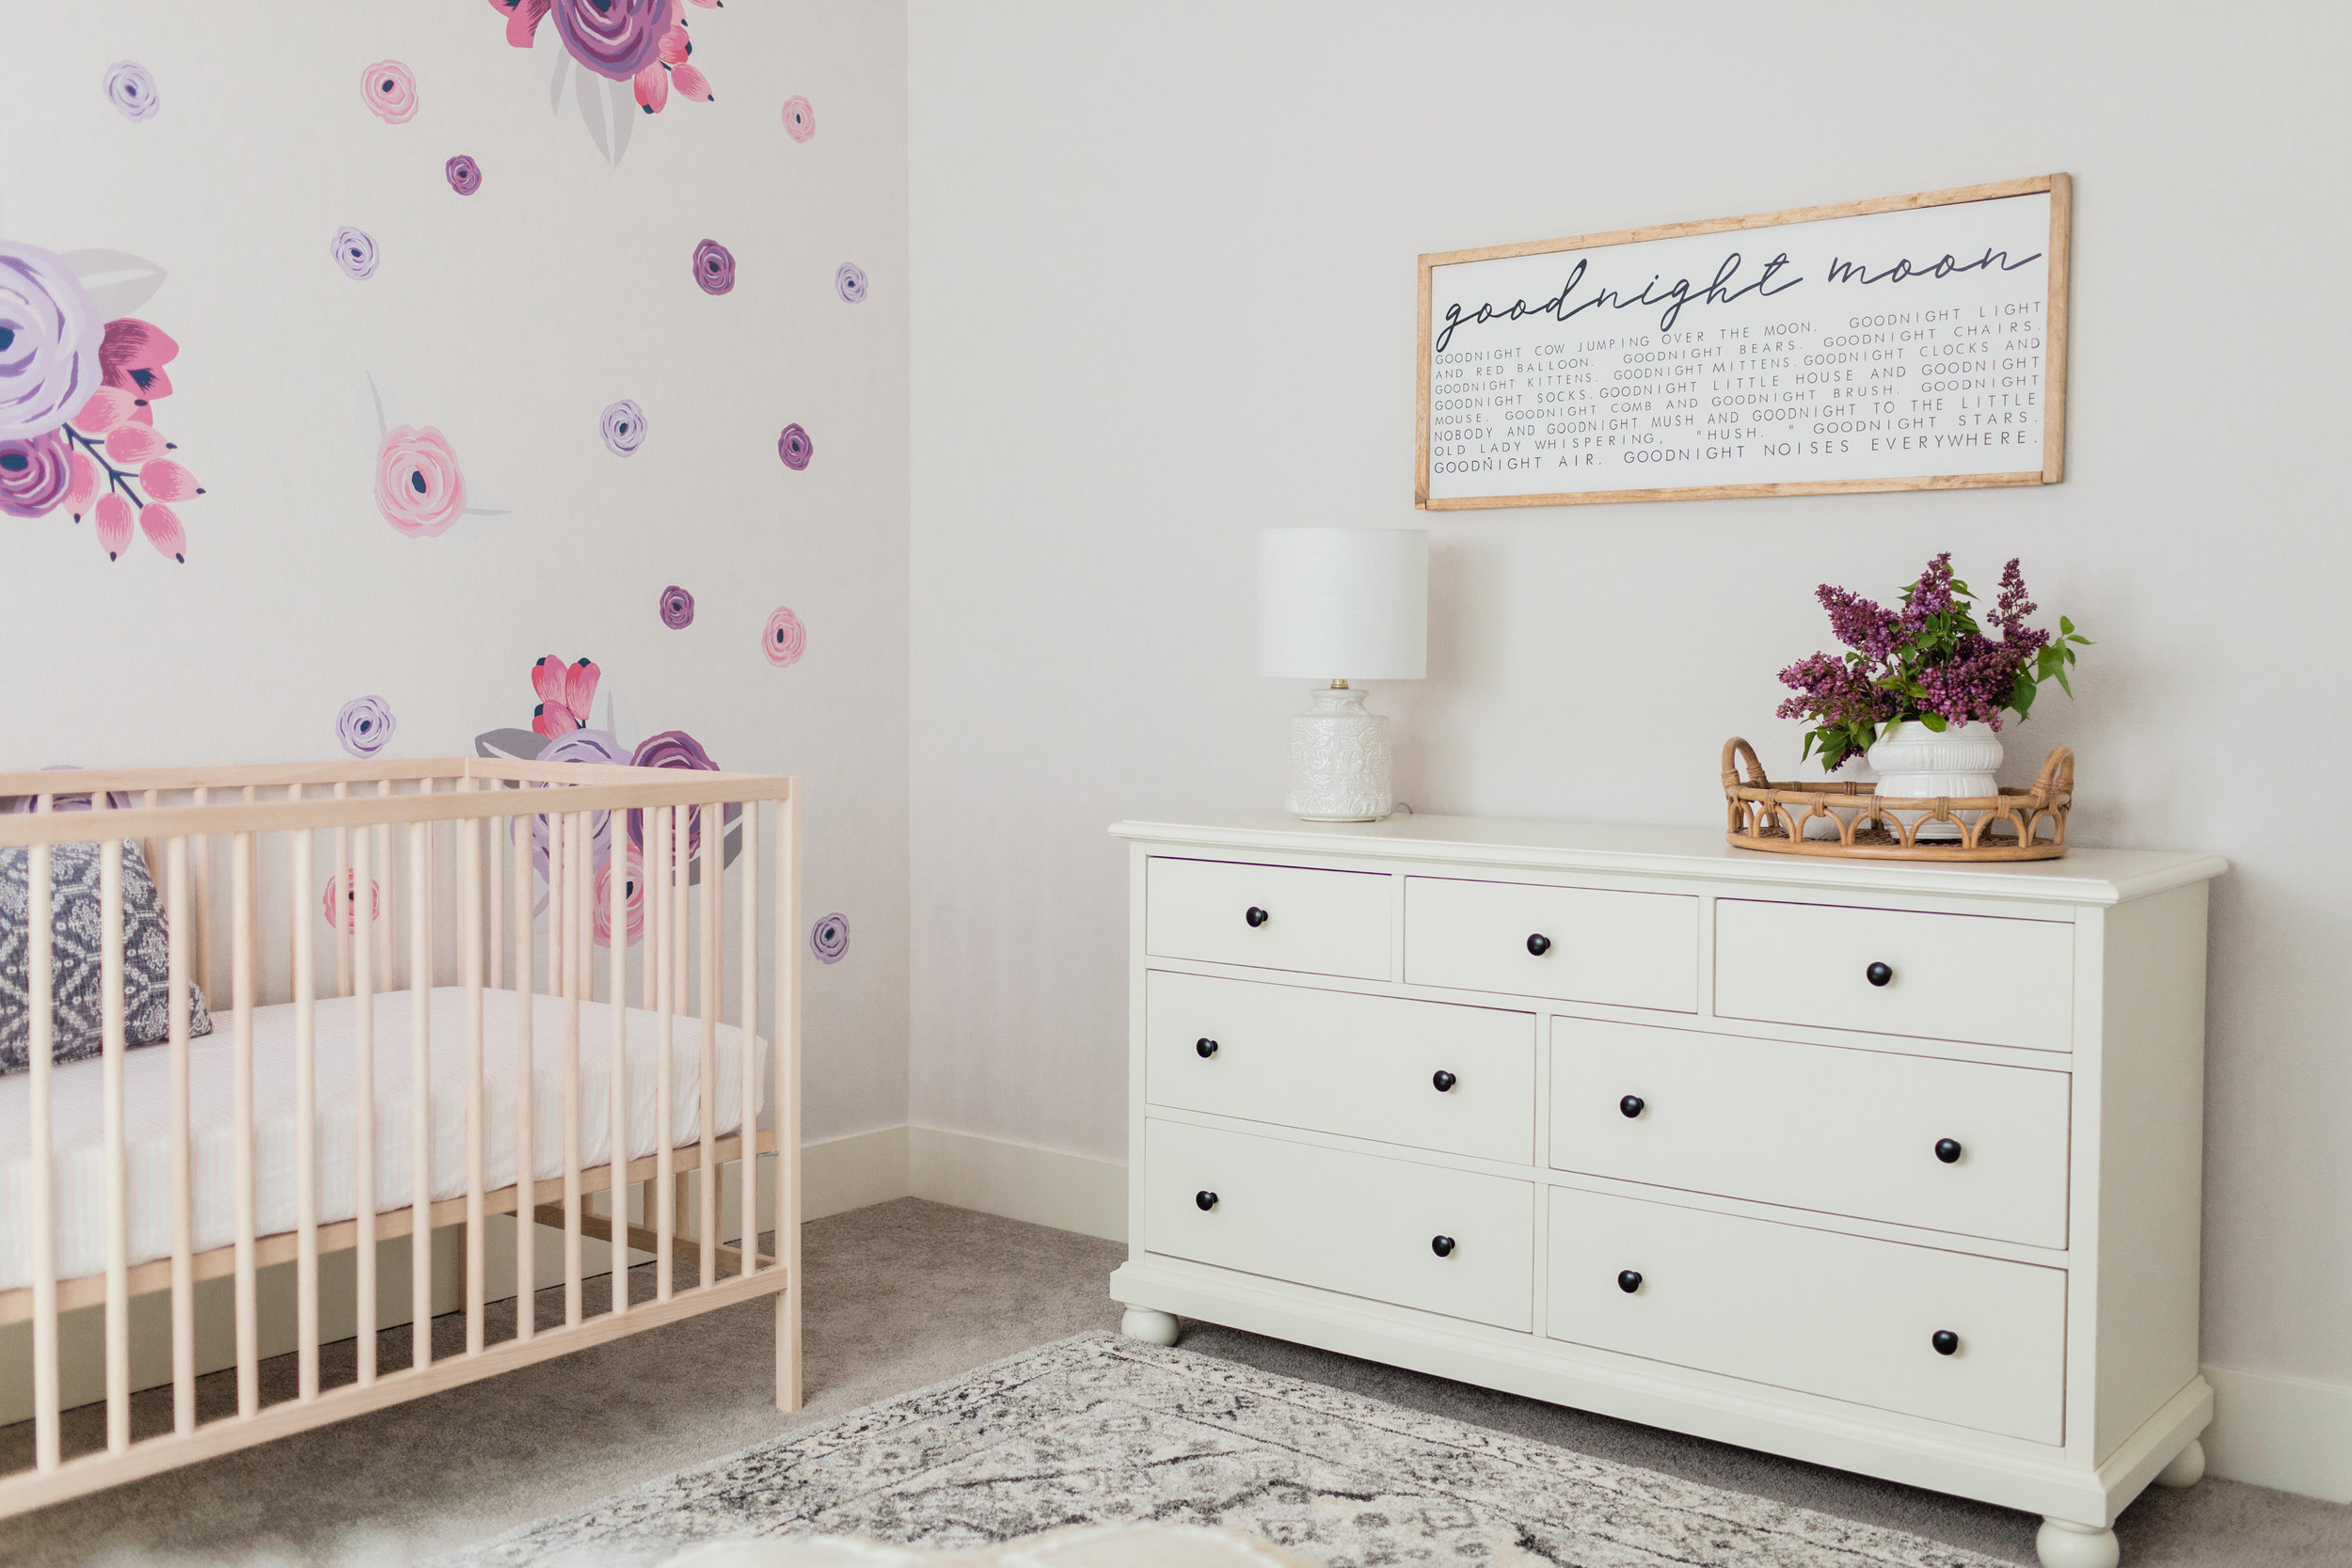 Charming Transitional Nursery Design by Harper Rae Design Co